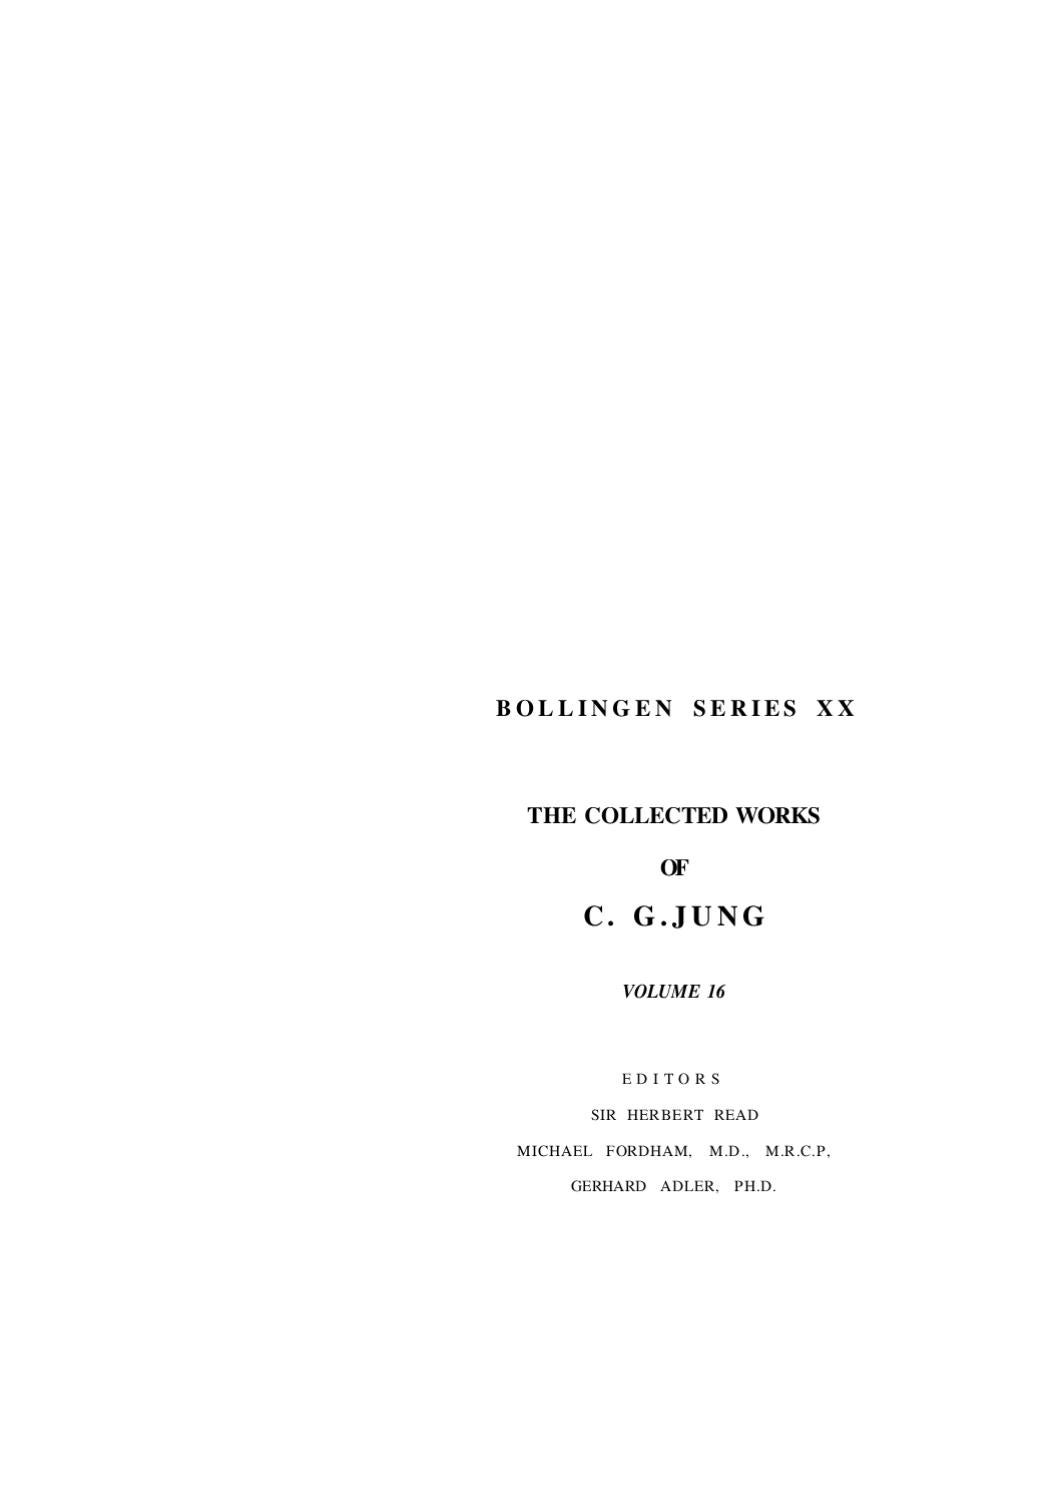 C g jung the practise of psychoterapy by horvath lajos issuu malvernweather Images